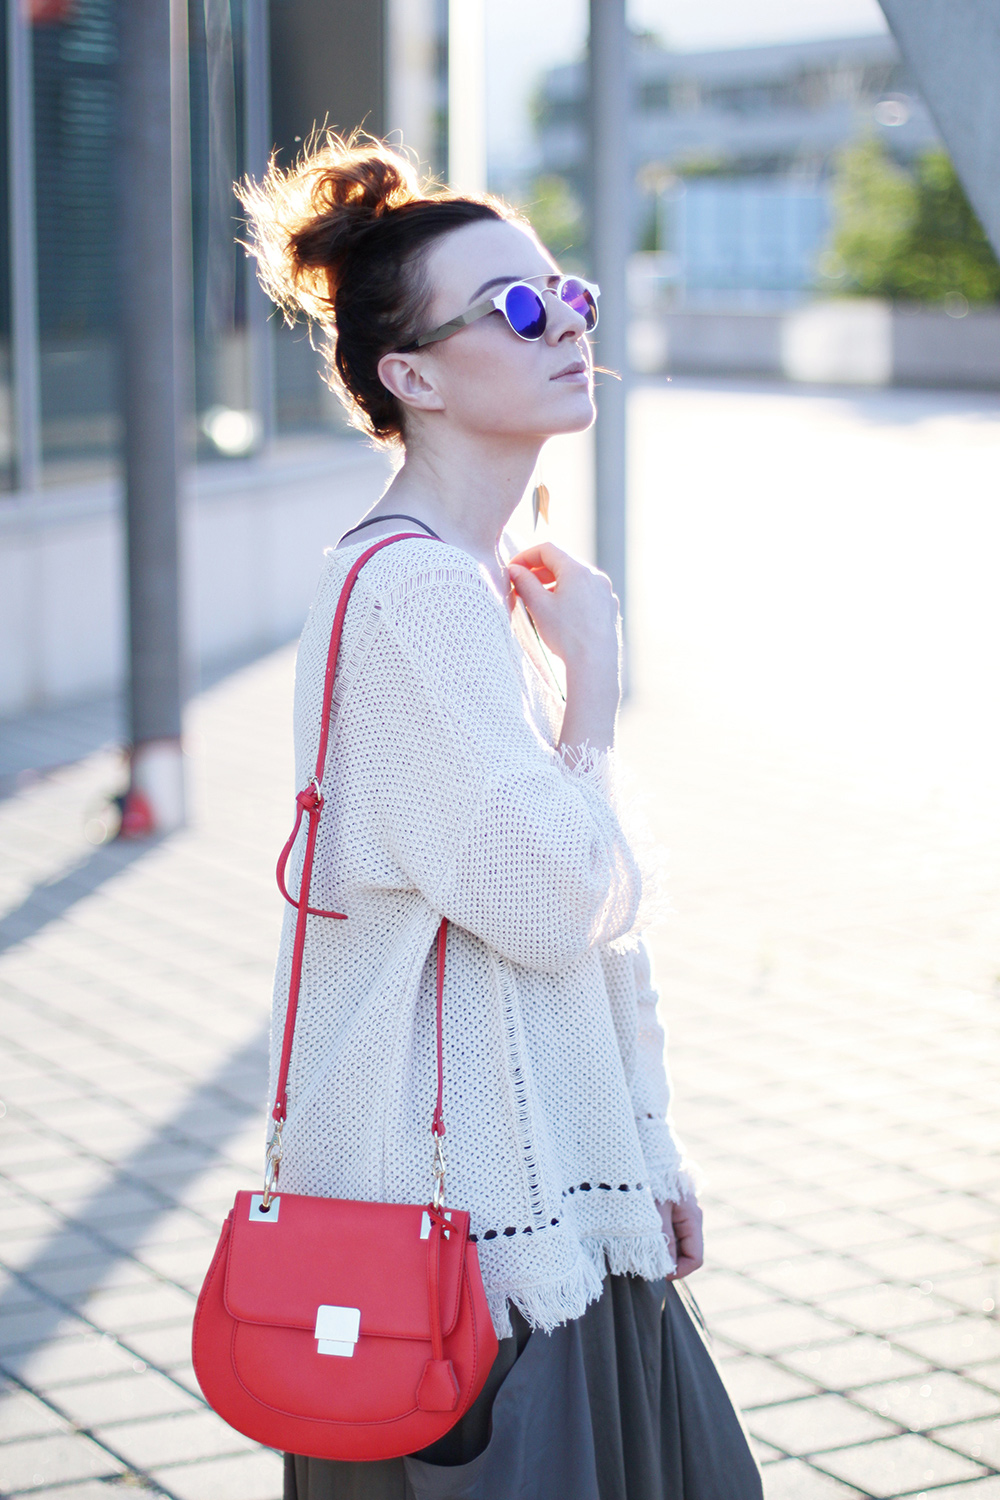 who is mocca, blog, tirol, innsbruck, austrianblogger, olympia world innsbruck, frenchie, boho, espadrilles, outfit kombinieren, aldo tasche chloe lookalike, spitfire sonnenbrille dior so real lookalike, mango pullover fransen, messy bun